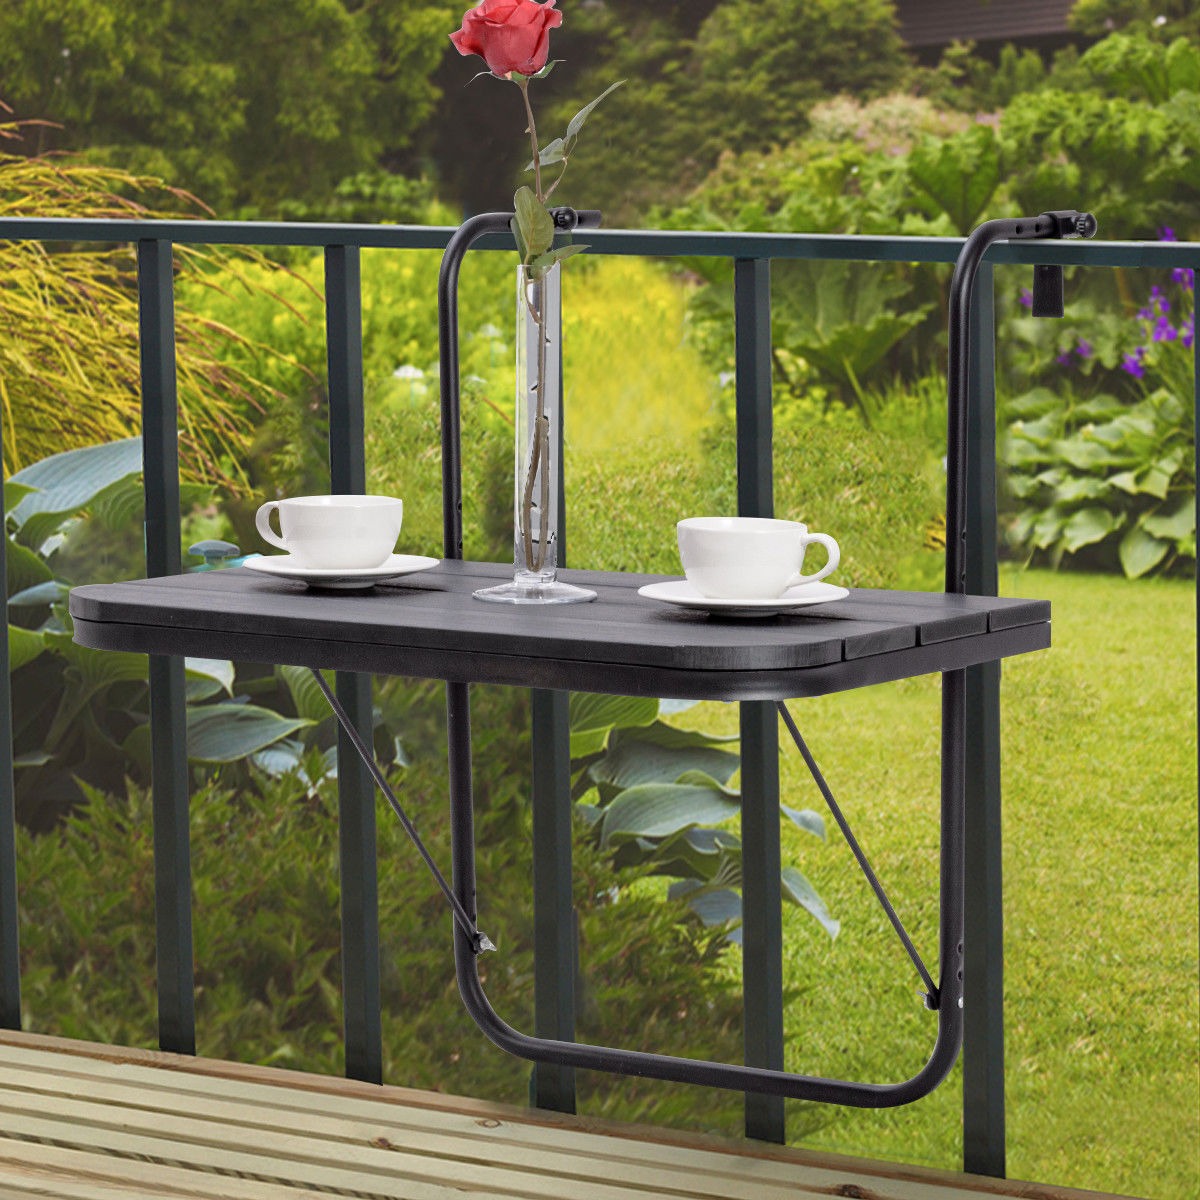 Costway Folding Balcony Deck Table Patio Small Side Stand Hanging Railing Adjustable